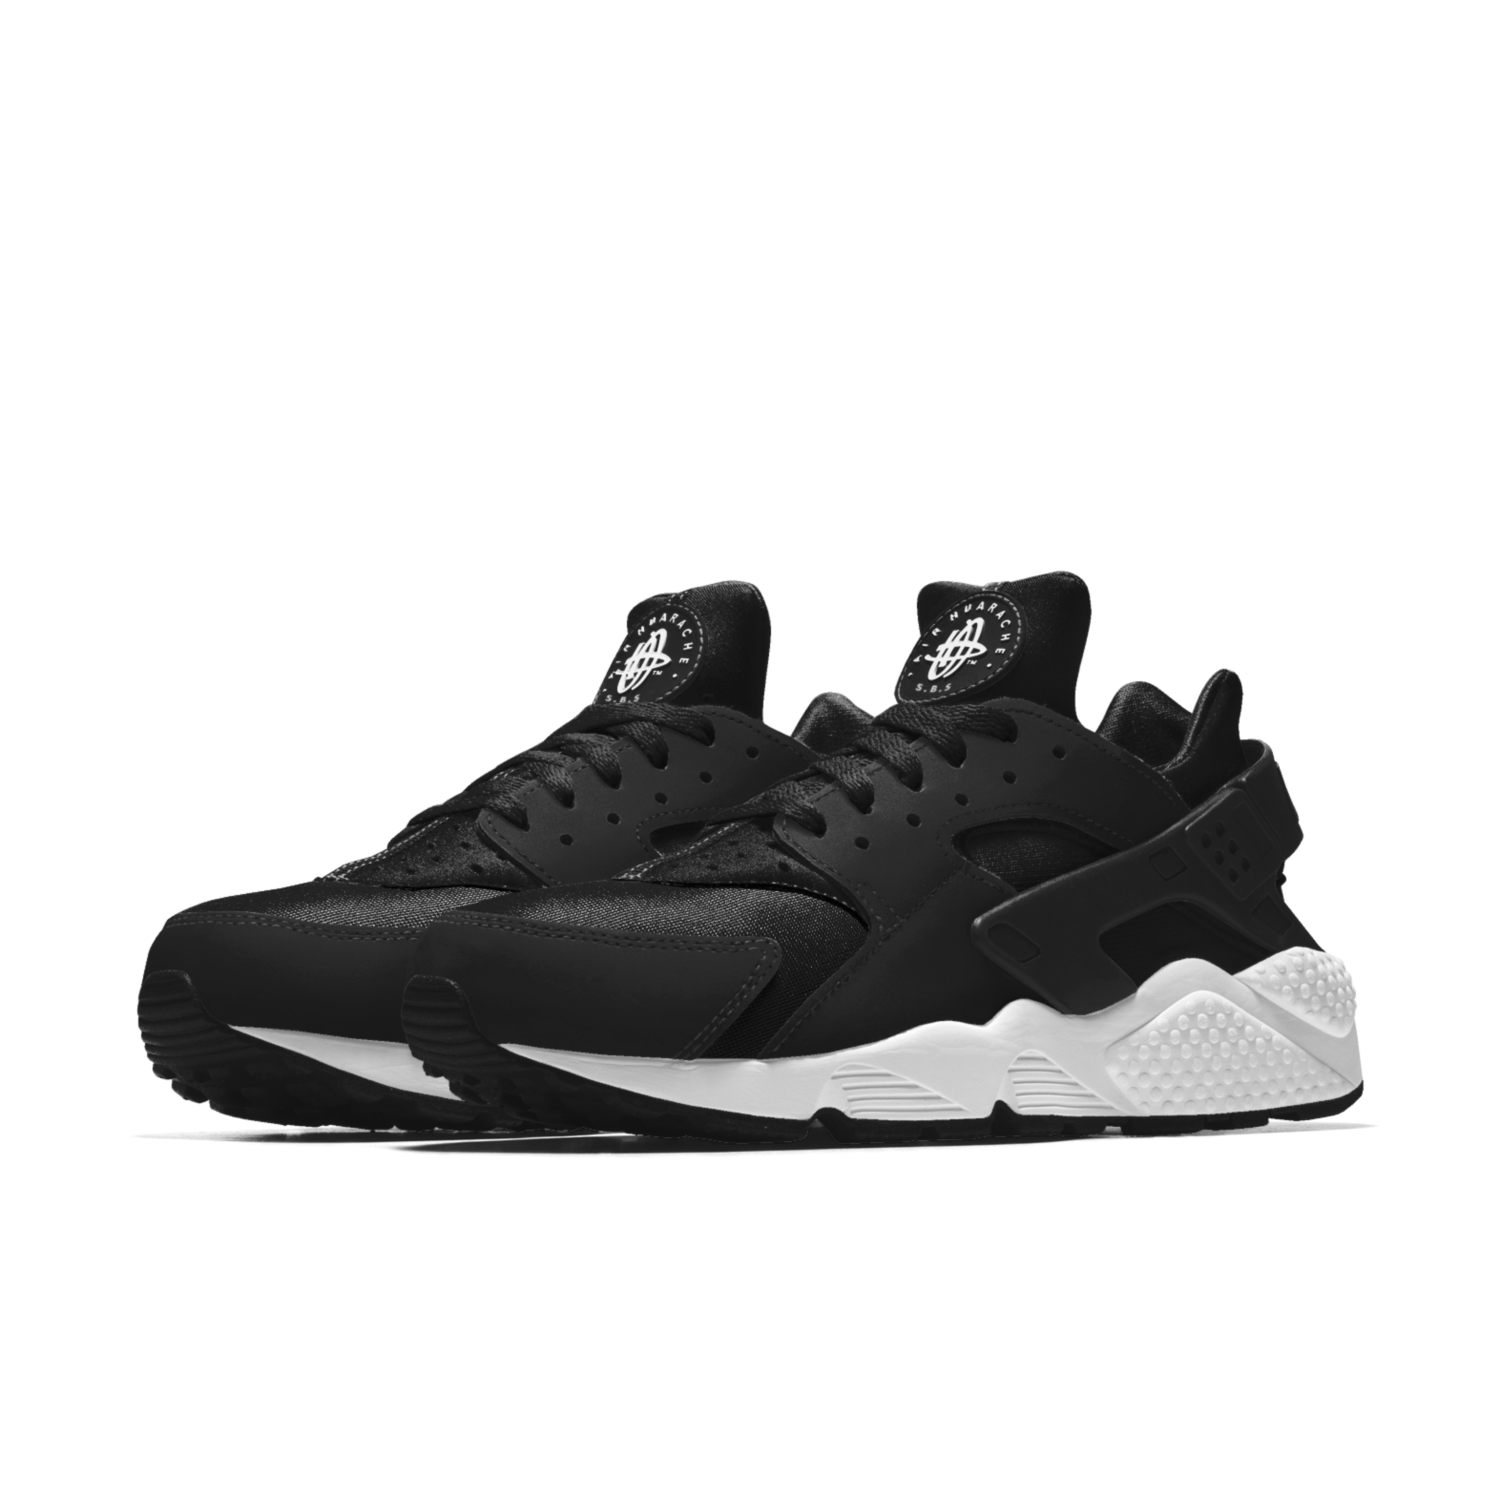 big sale eda5b d13d8 Nike Air Huarache Essential iD Shoe. Nike.com